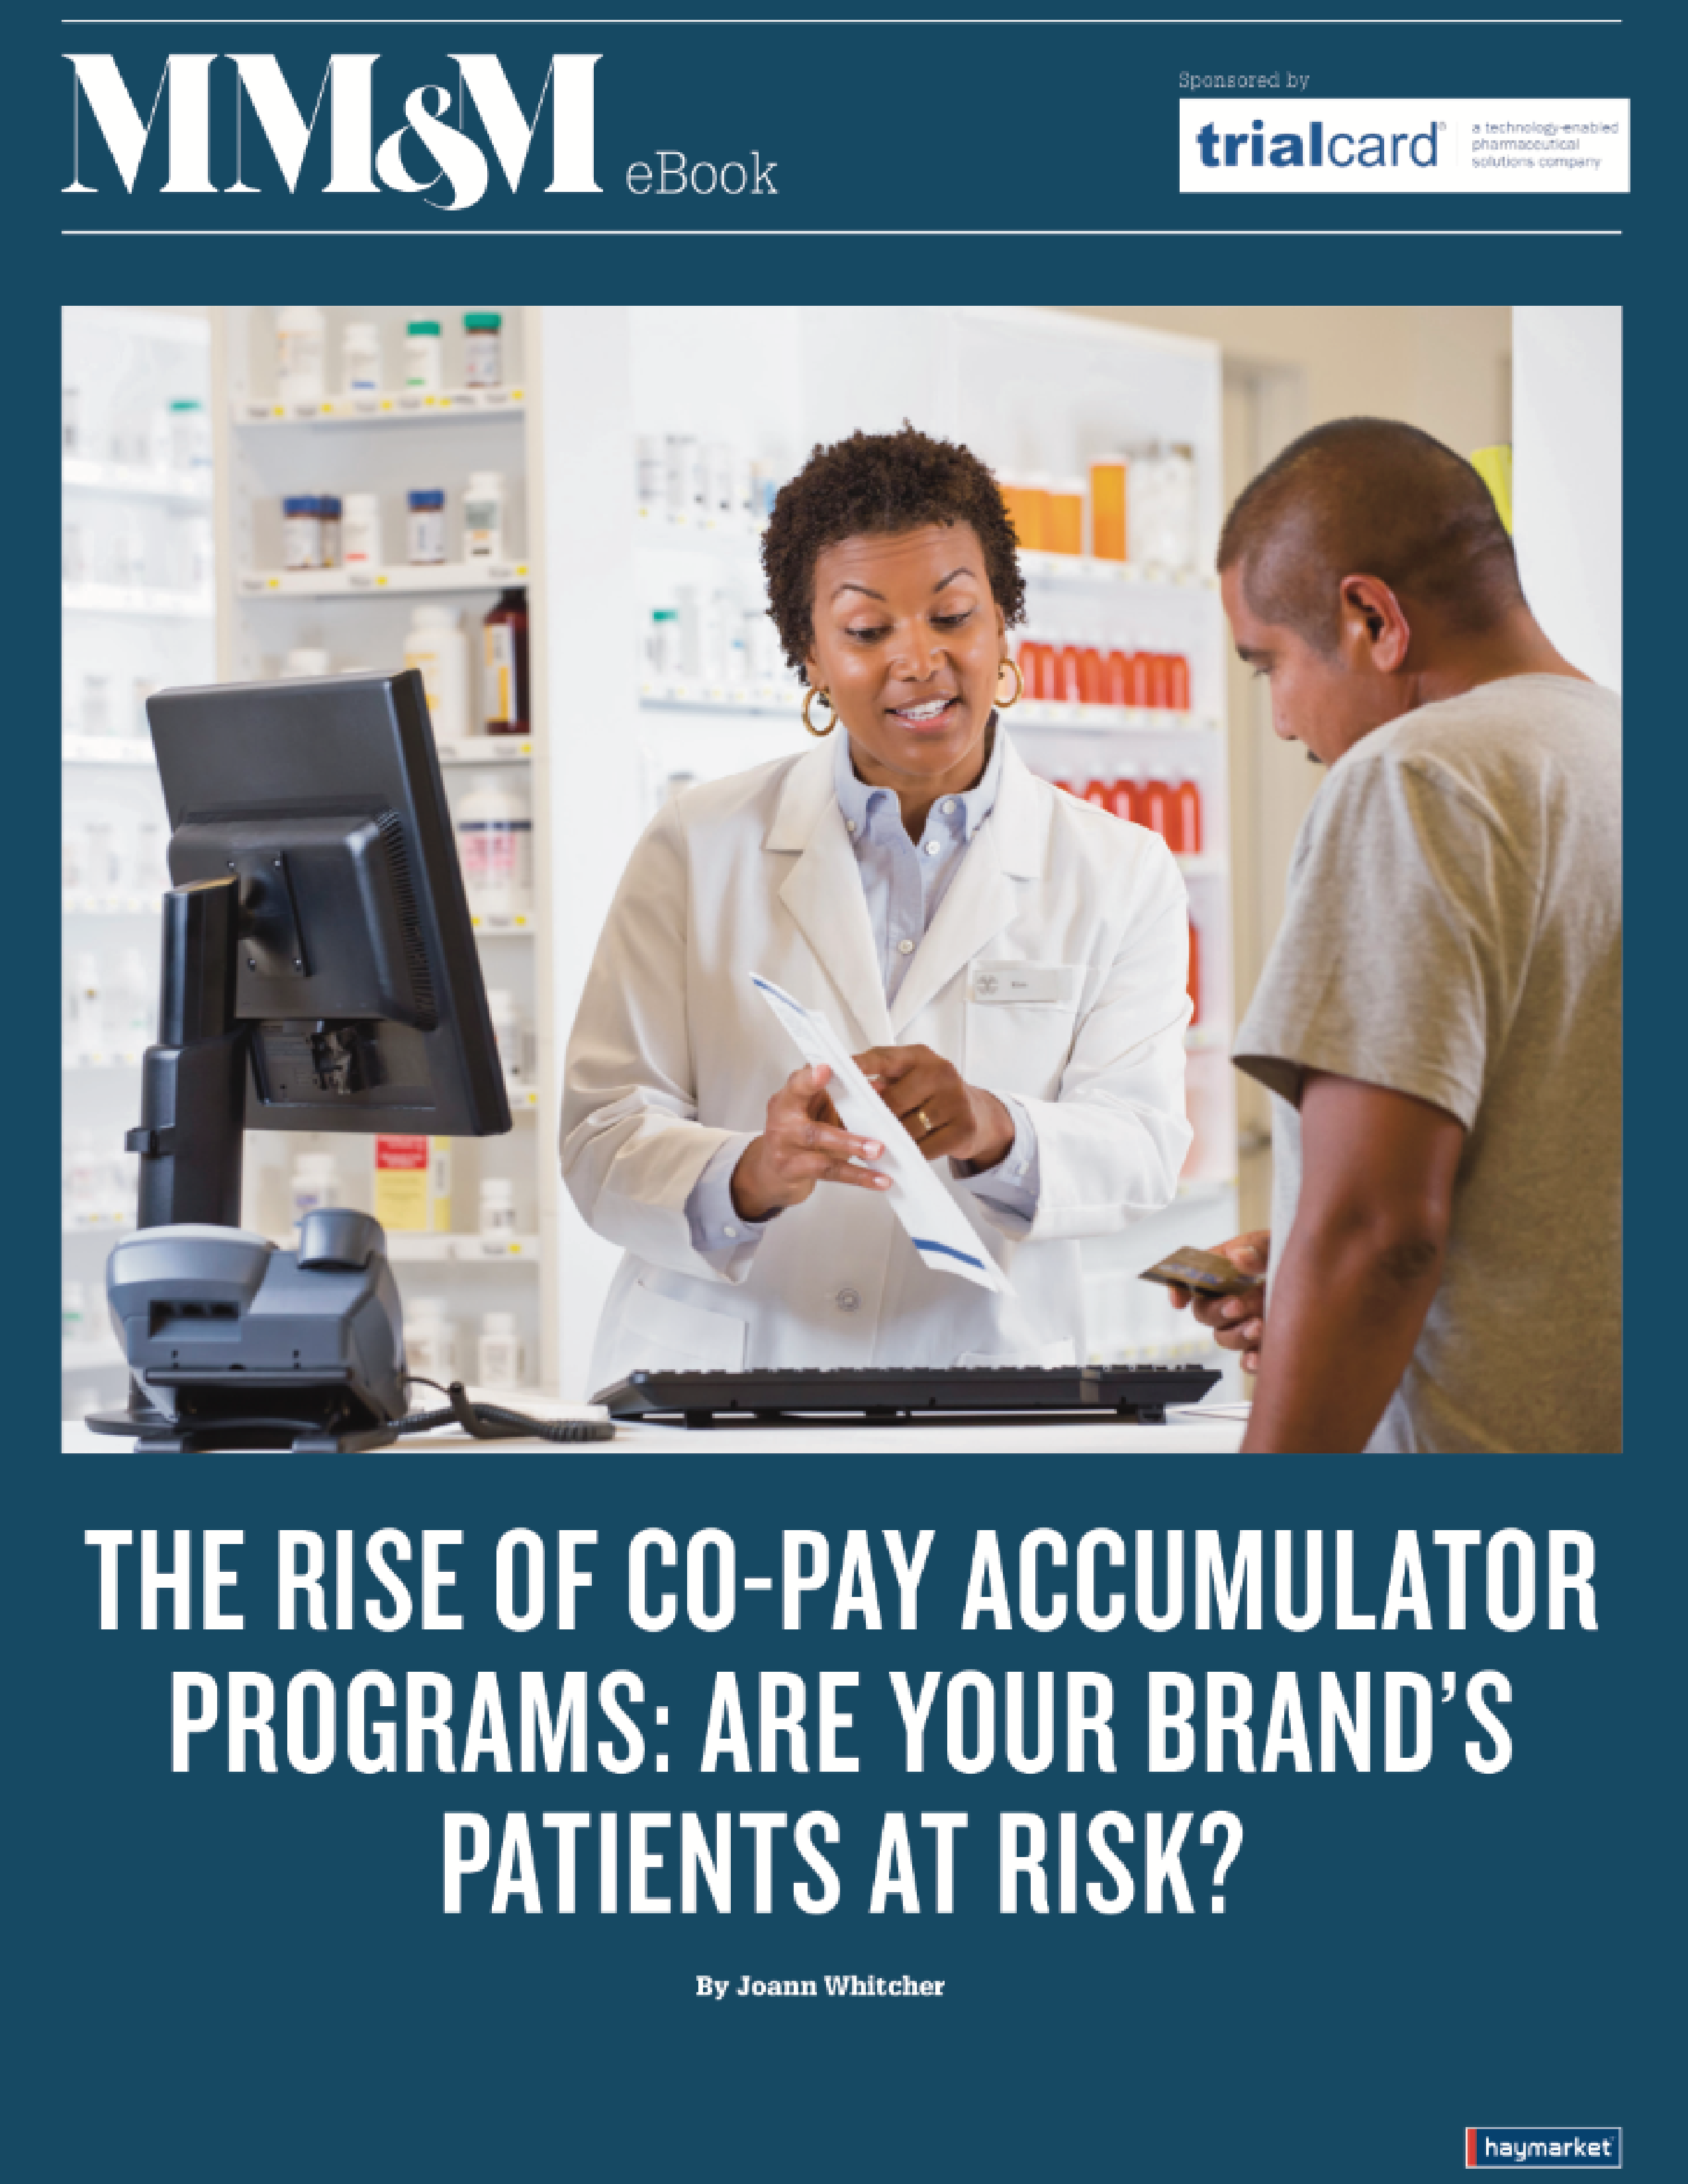 eBook -- The Rise of Co-Pay Accumulator Programs: Are Your Brand's Patients at Risk?